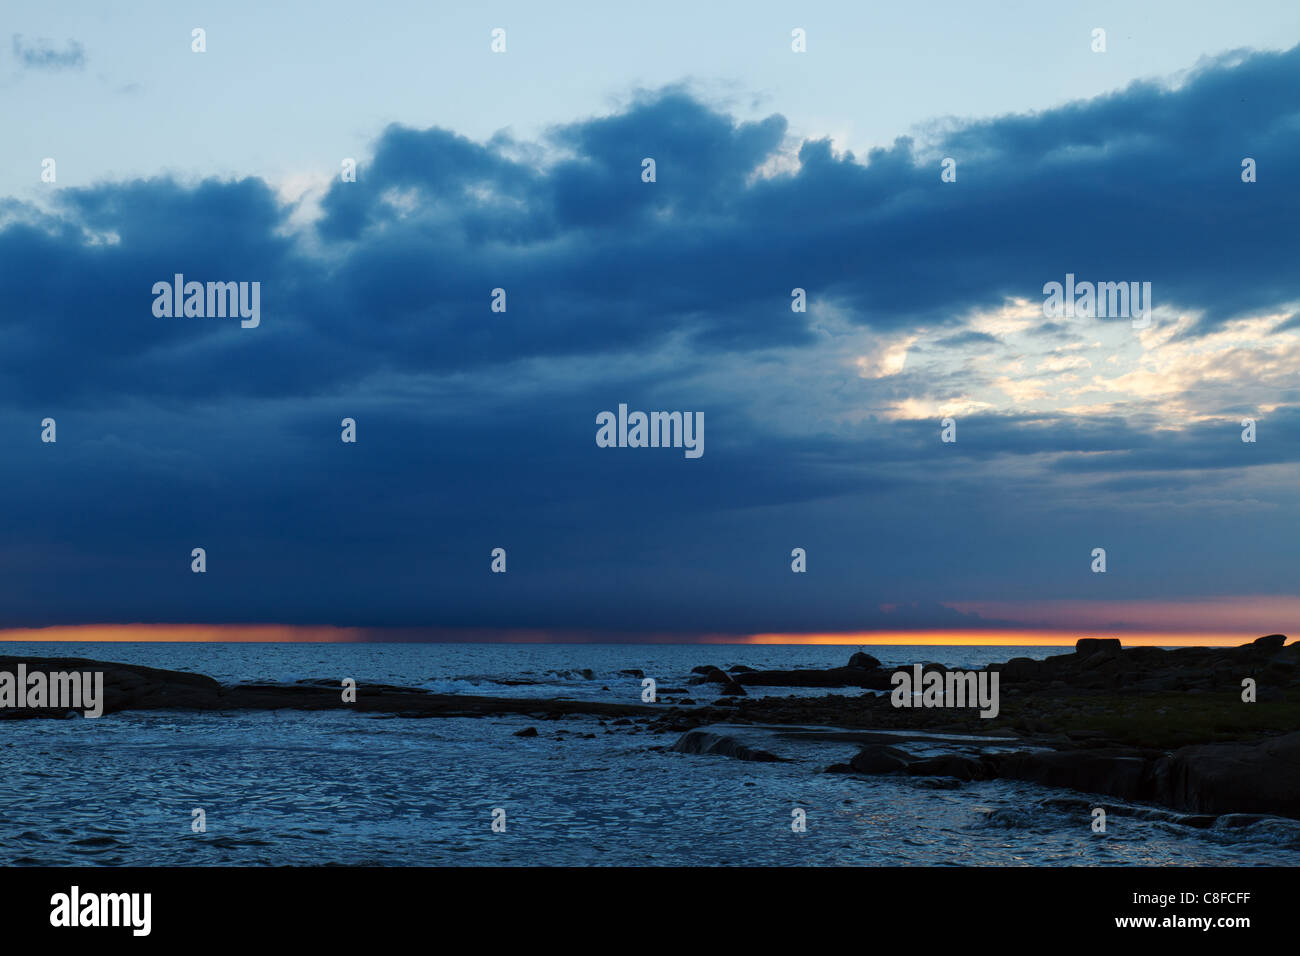 Rain cloud with rain out in the sea by sunset, outside Apelviken, Varberg, on the Swedish west coast. - Stock Image